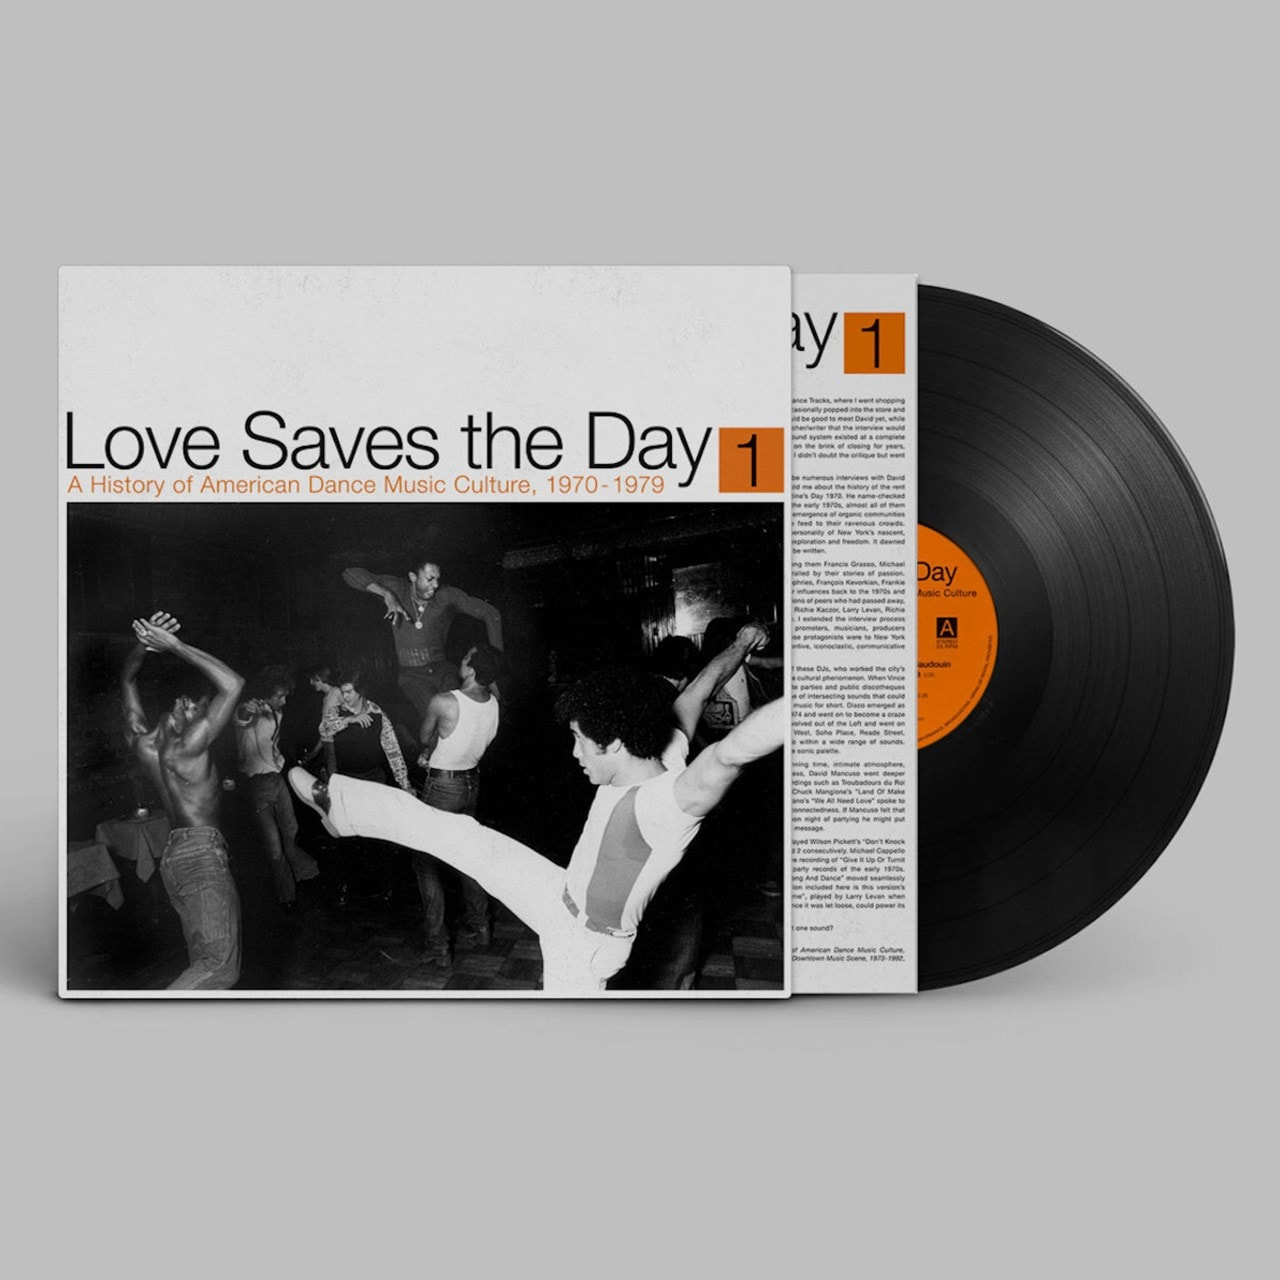 Love Saves the Day: A History of American Dance Music Culture 1970 - 1979 - Volume 1 - 2